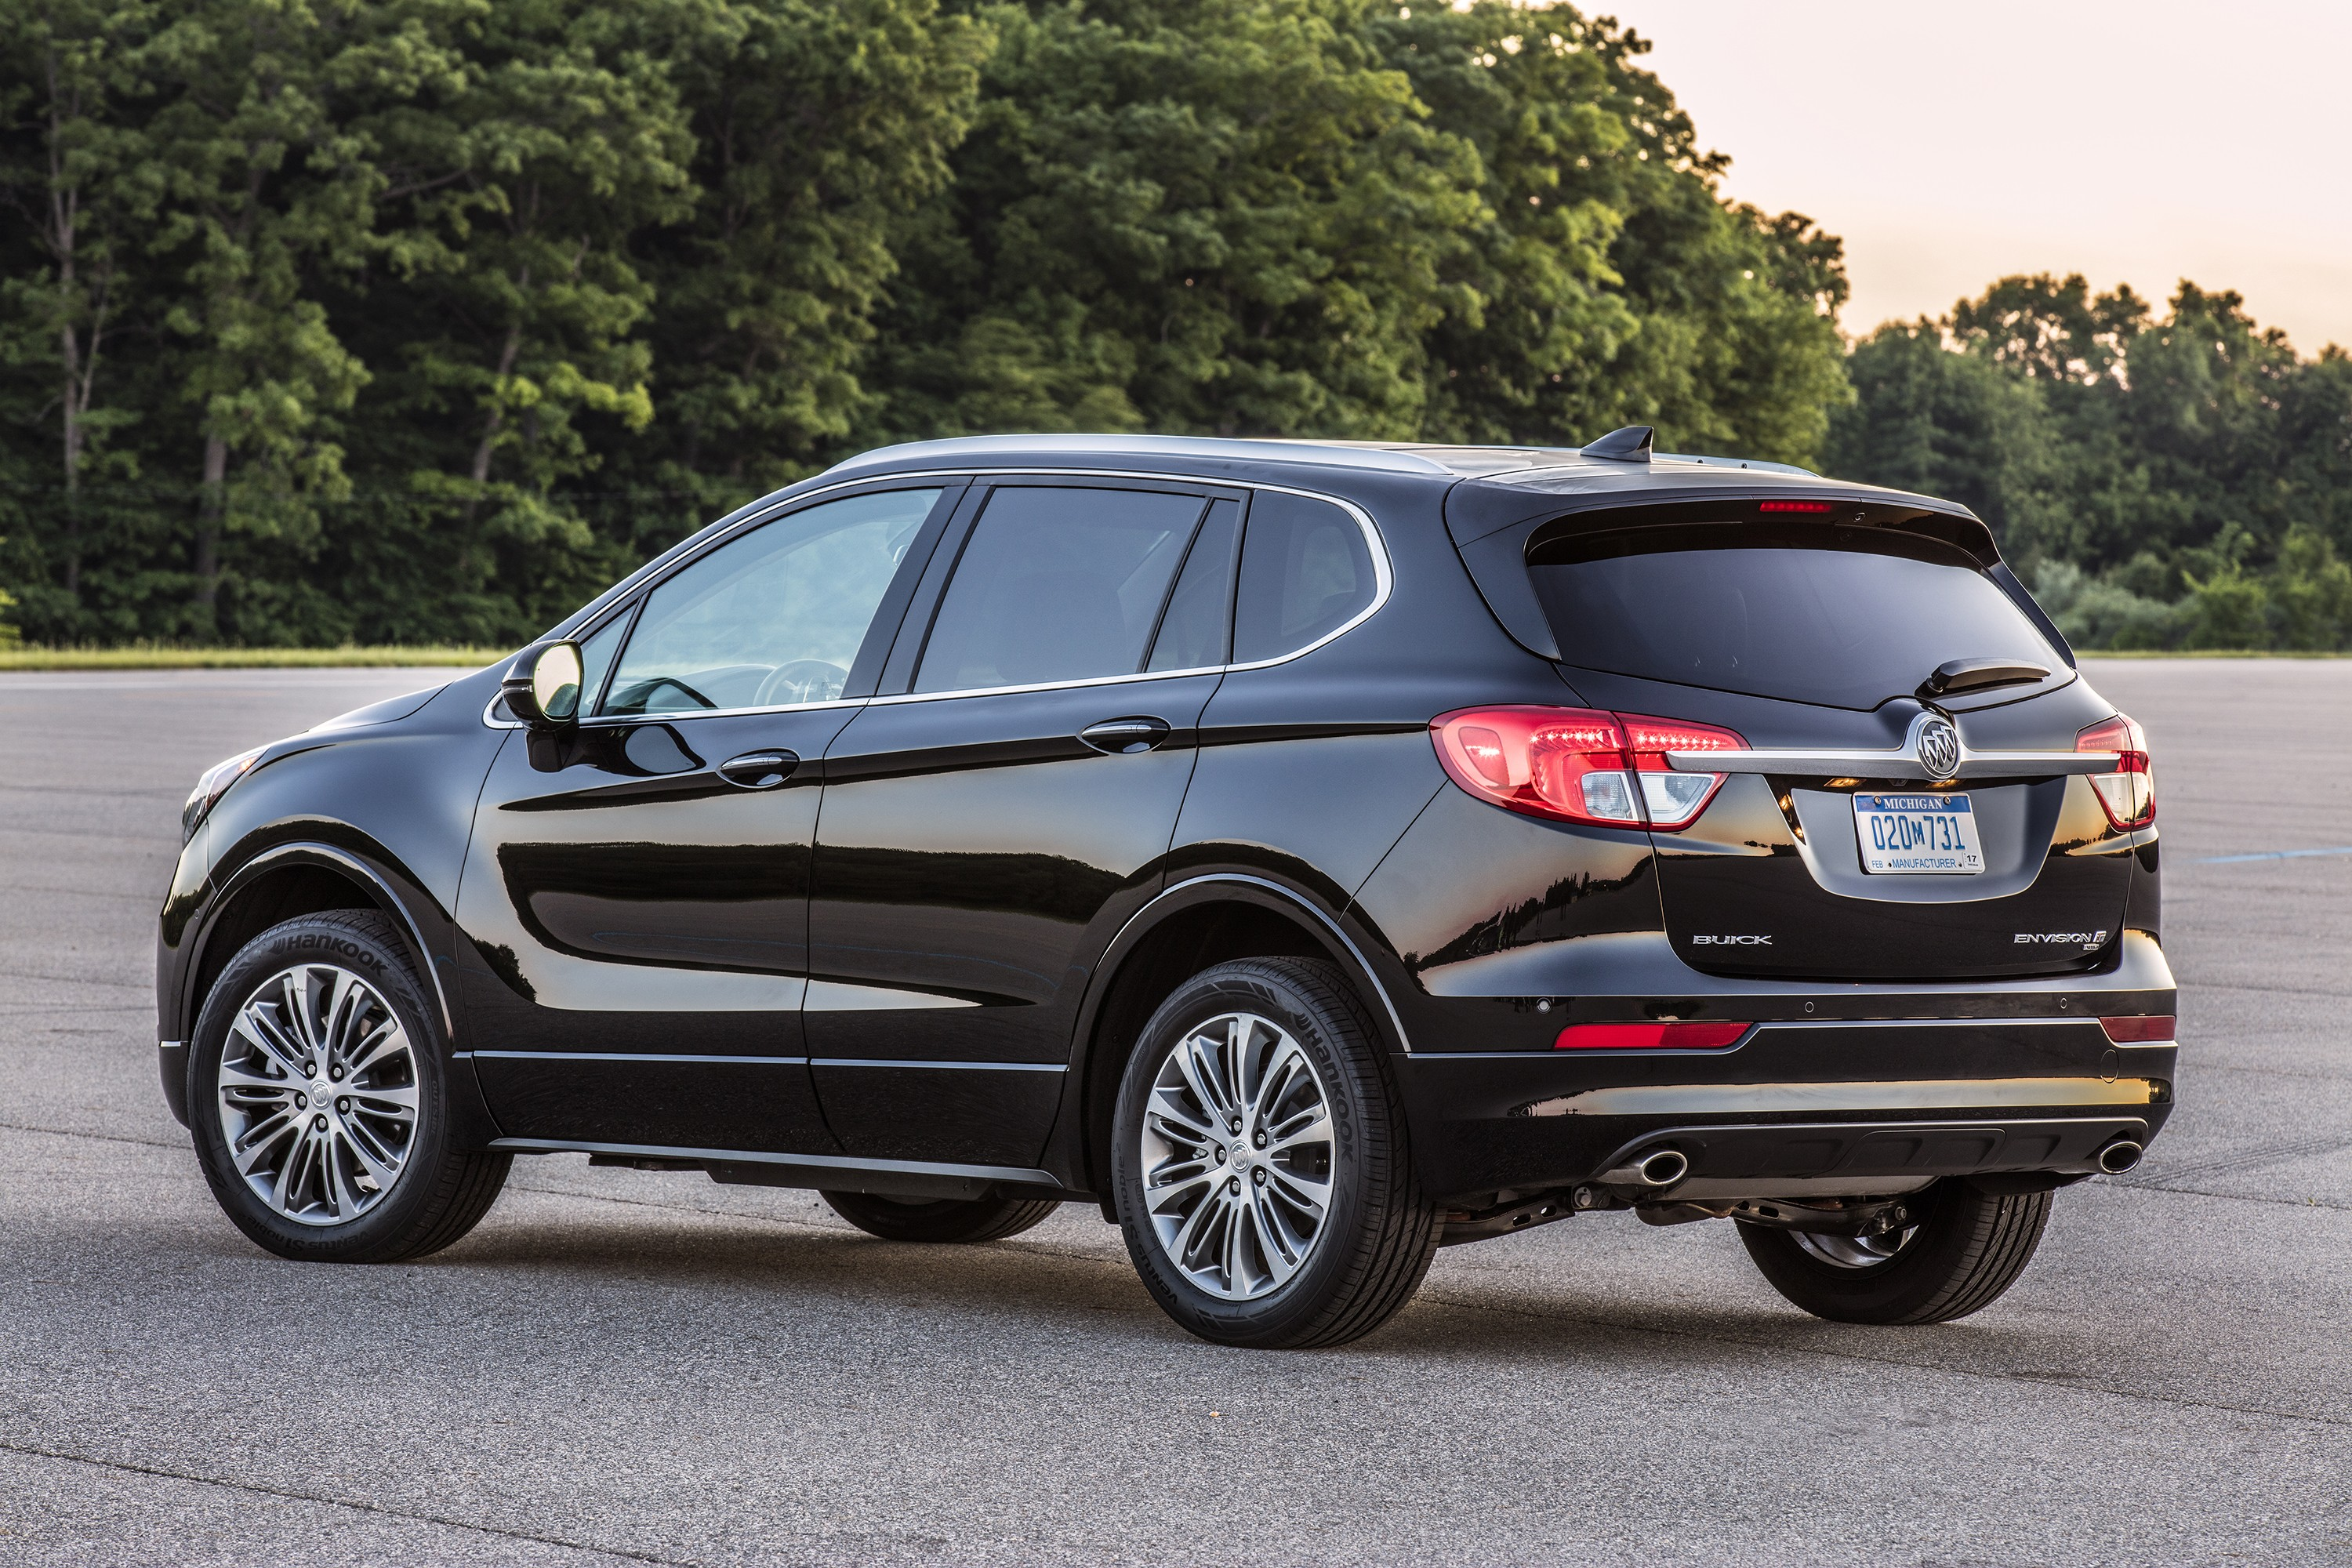 2014 - [Buick] Envision - Page 4 2019-buick-envision-adds-hydra-matic-9-speed-automatic-transmission_1